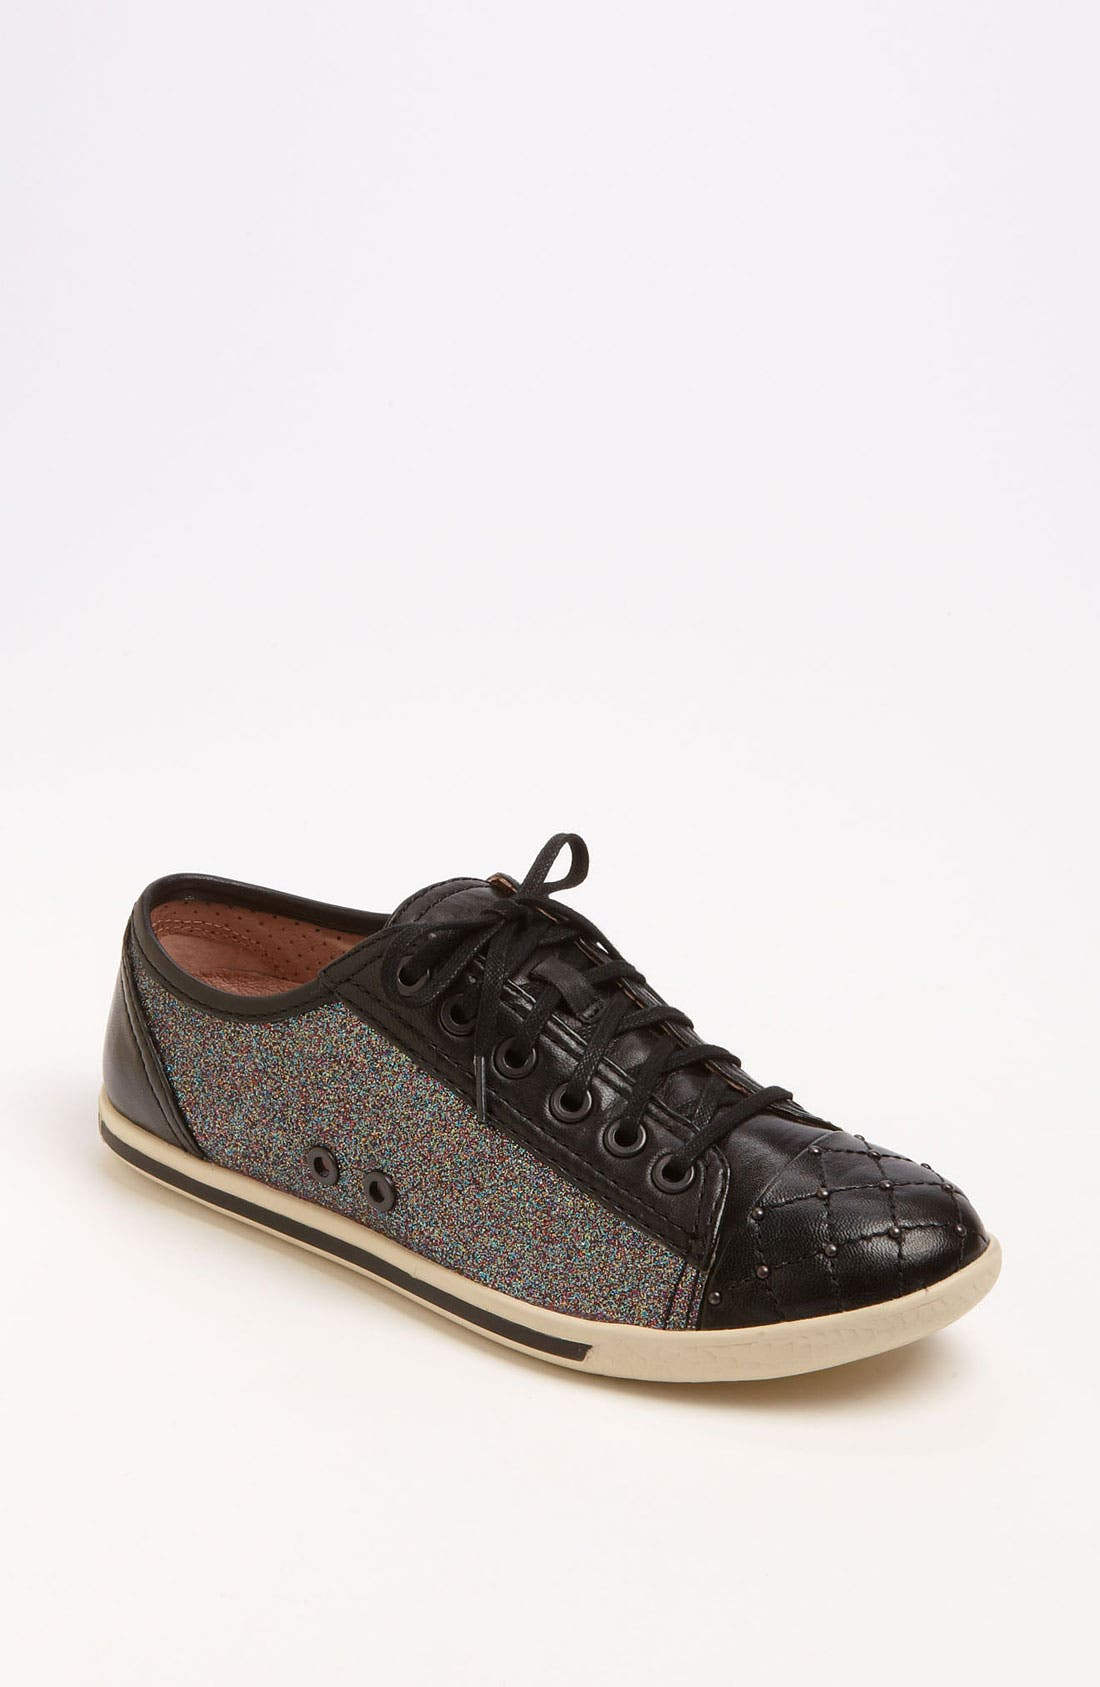 Alternate Image 1 Selected - Vince Camuto 'Willow' Sneaker